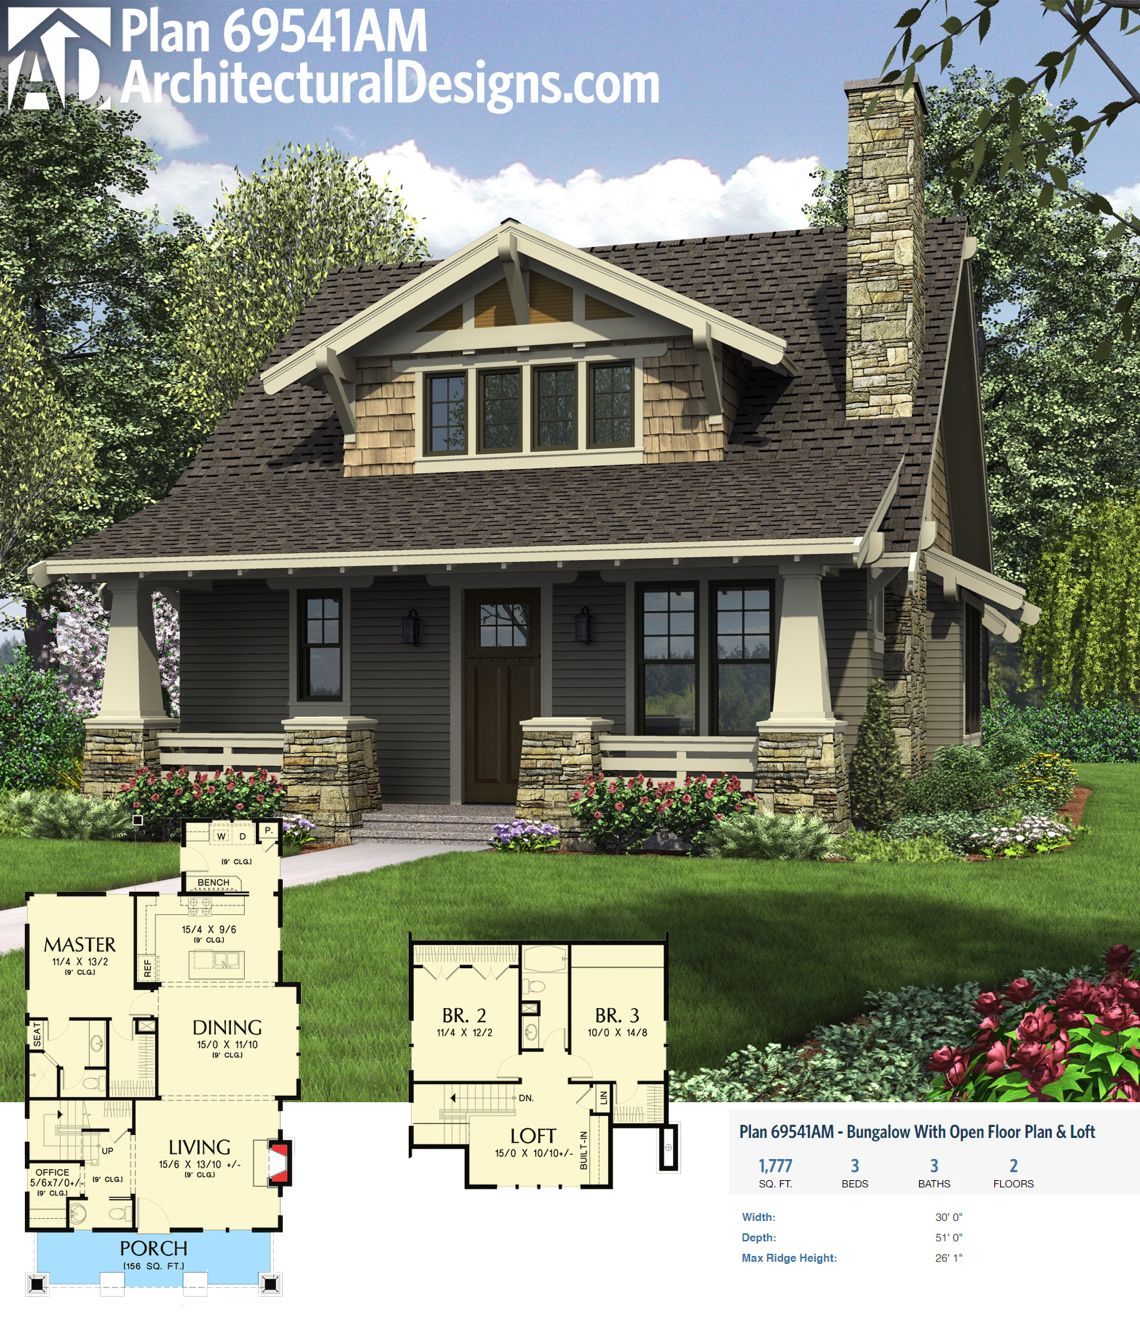 Architectural designs bungalow house plan 69541am ready when you are where do you want to build